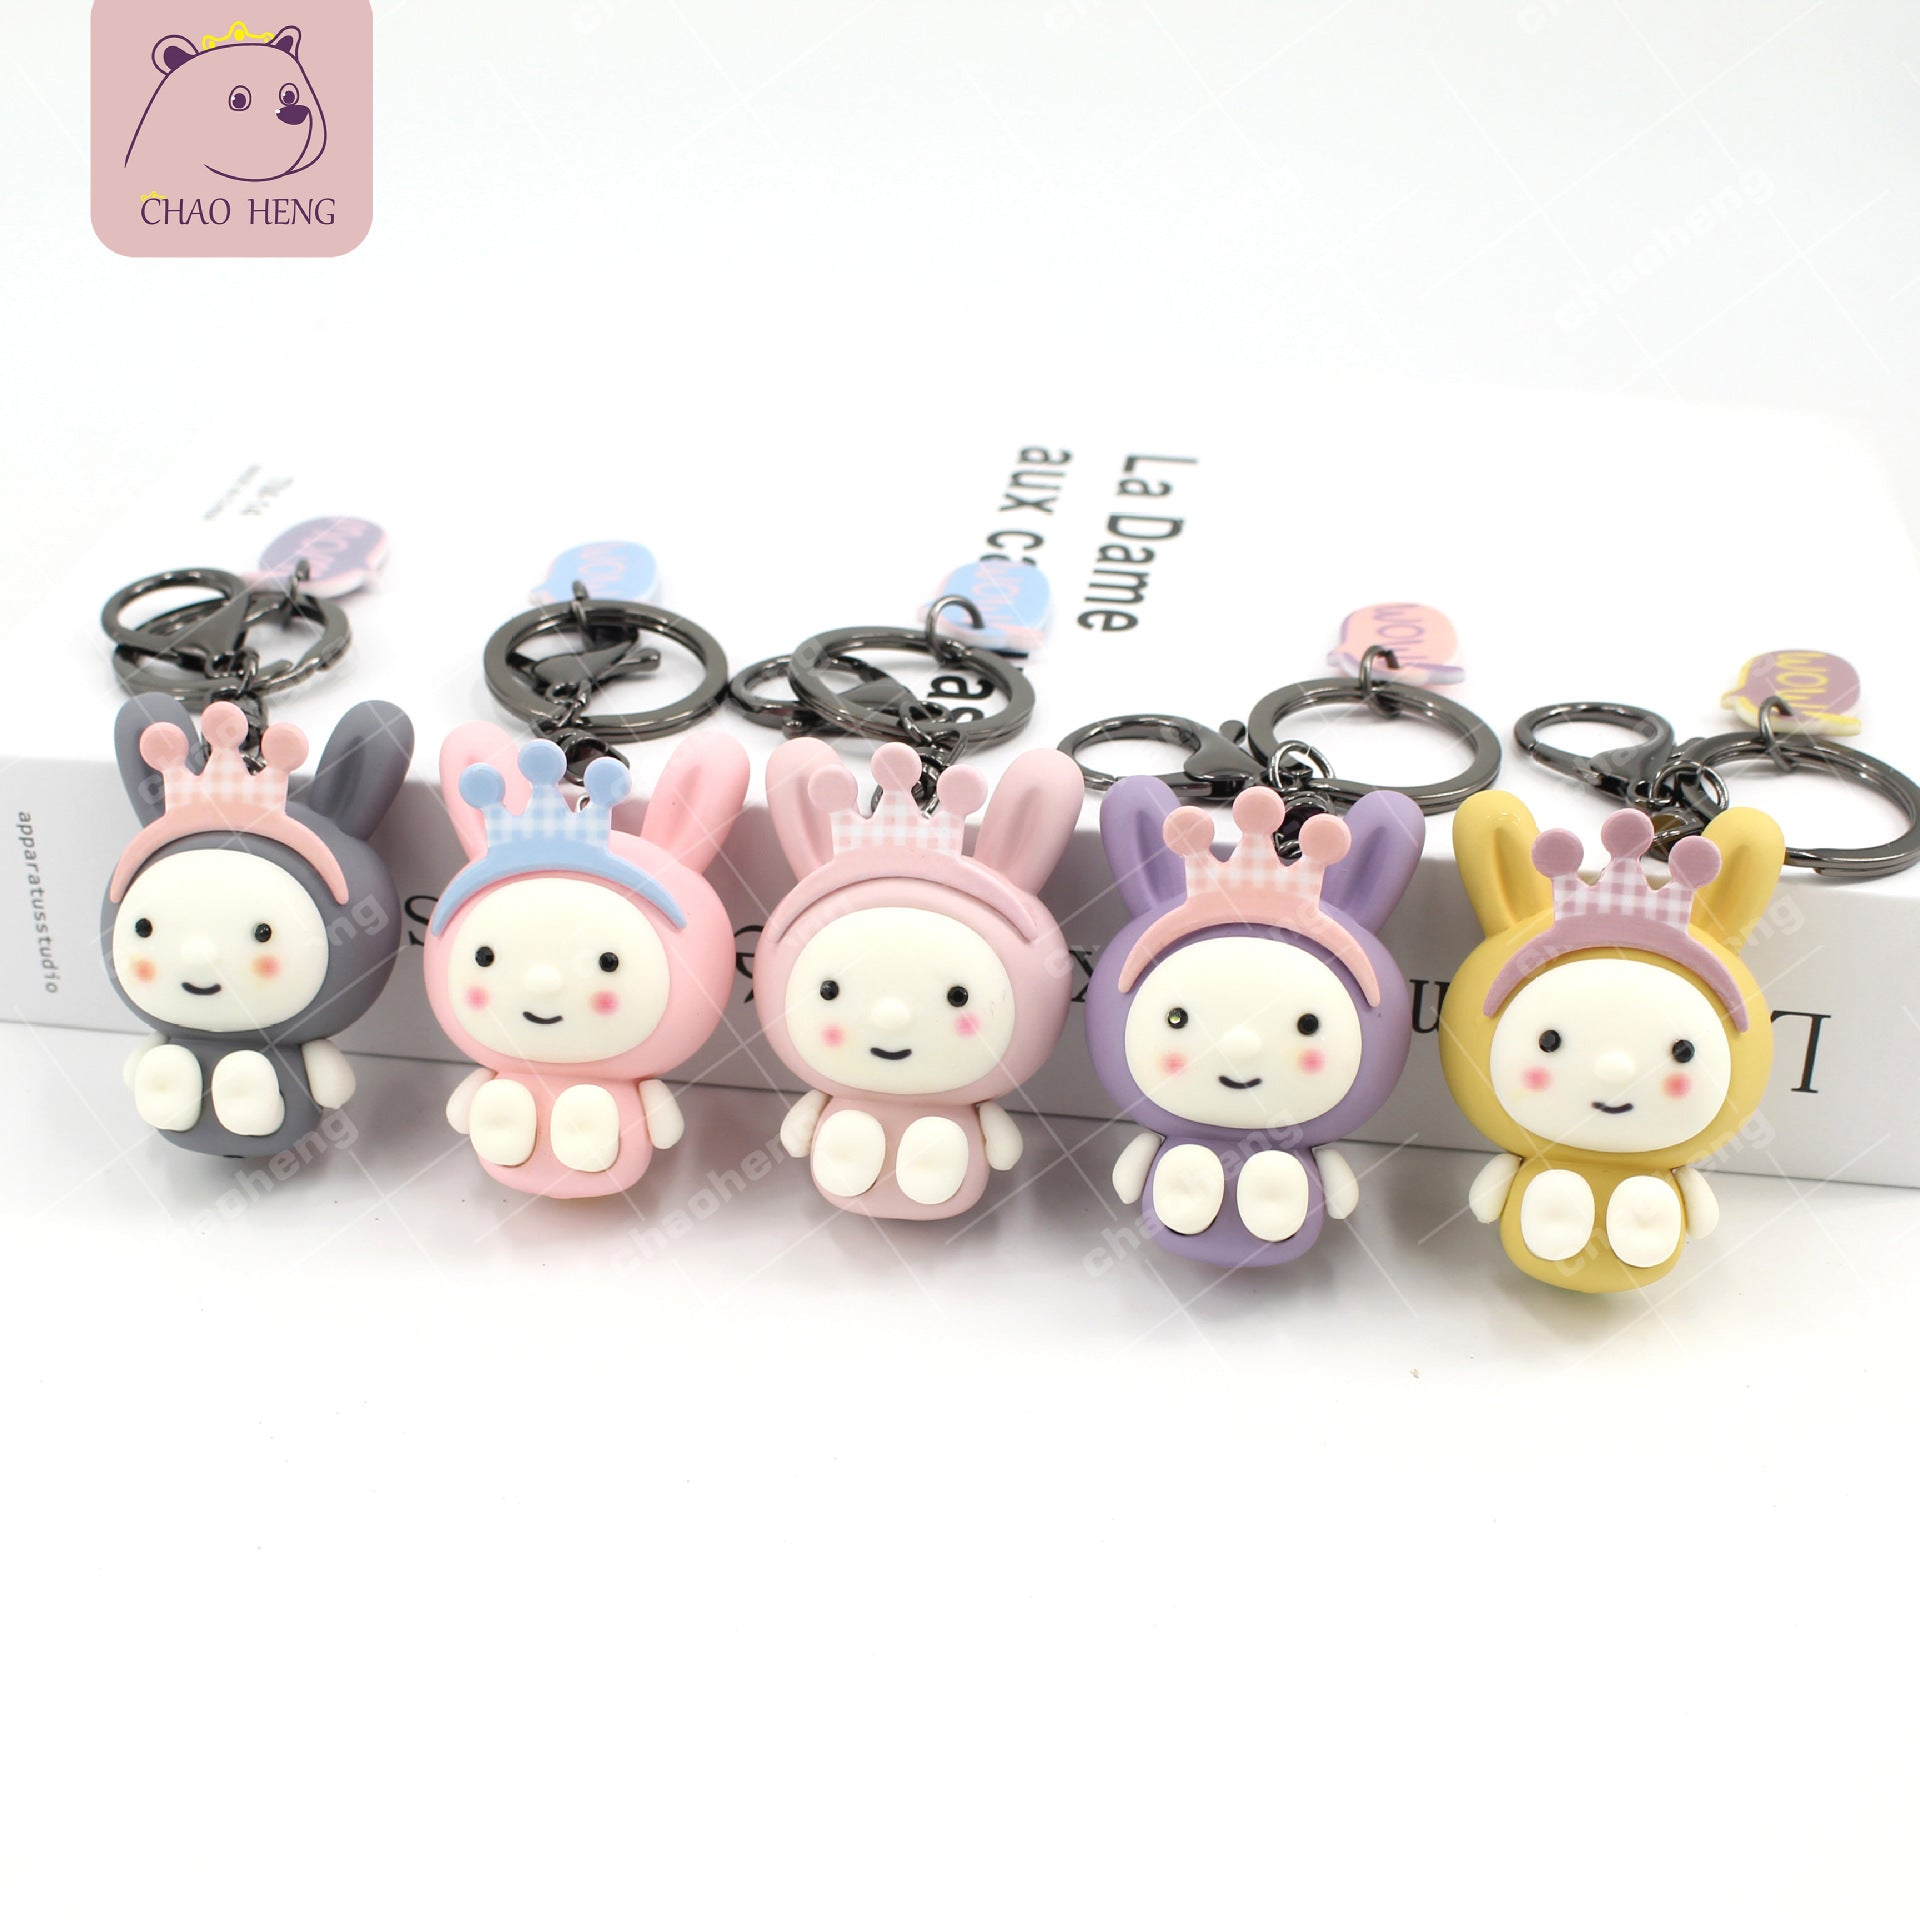 Factory direct cute rabbit keychain Jelly effect crown rabbit Cute pet rabbit keychain pendant